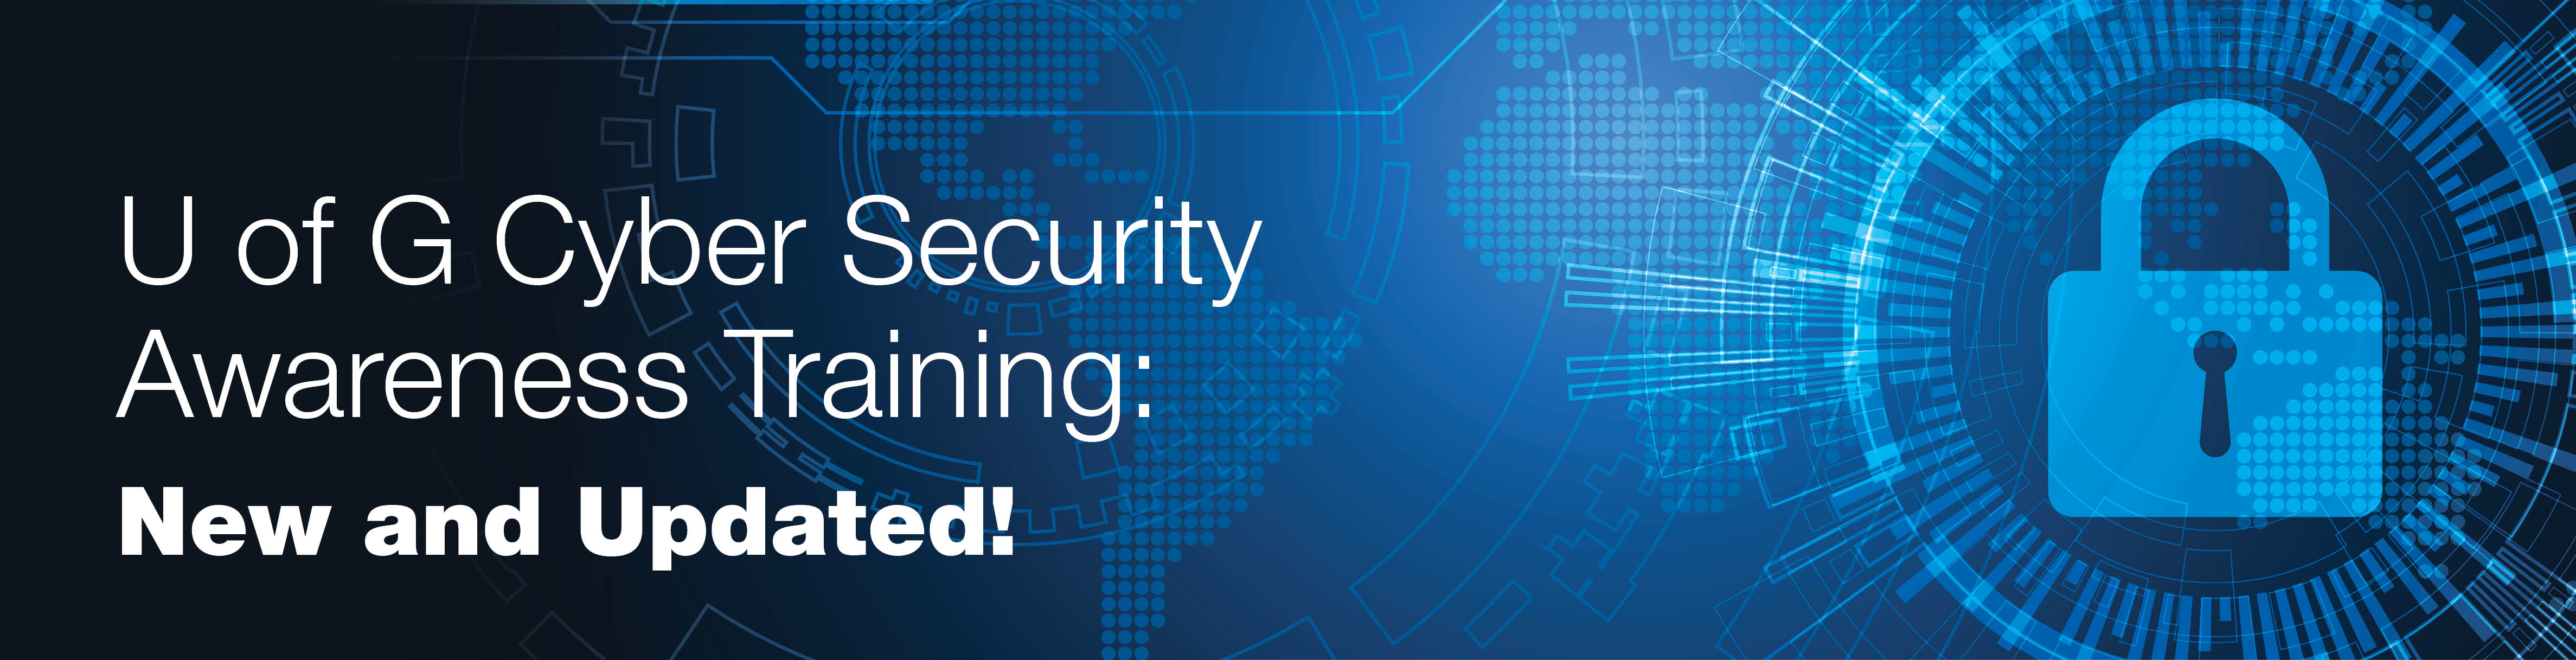 New and Updated U of G Cyber Security Awareness Training!